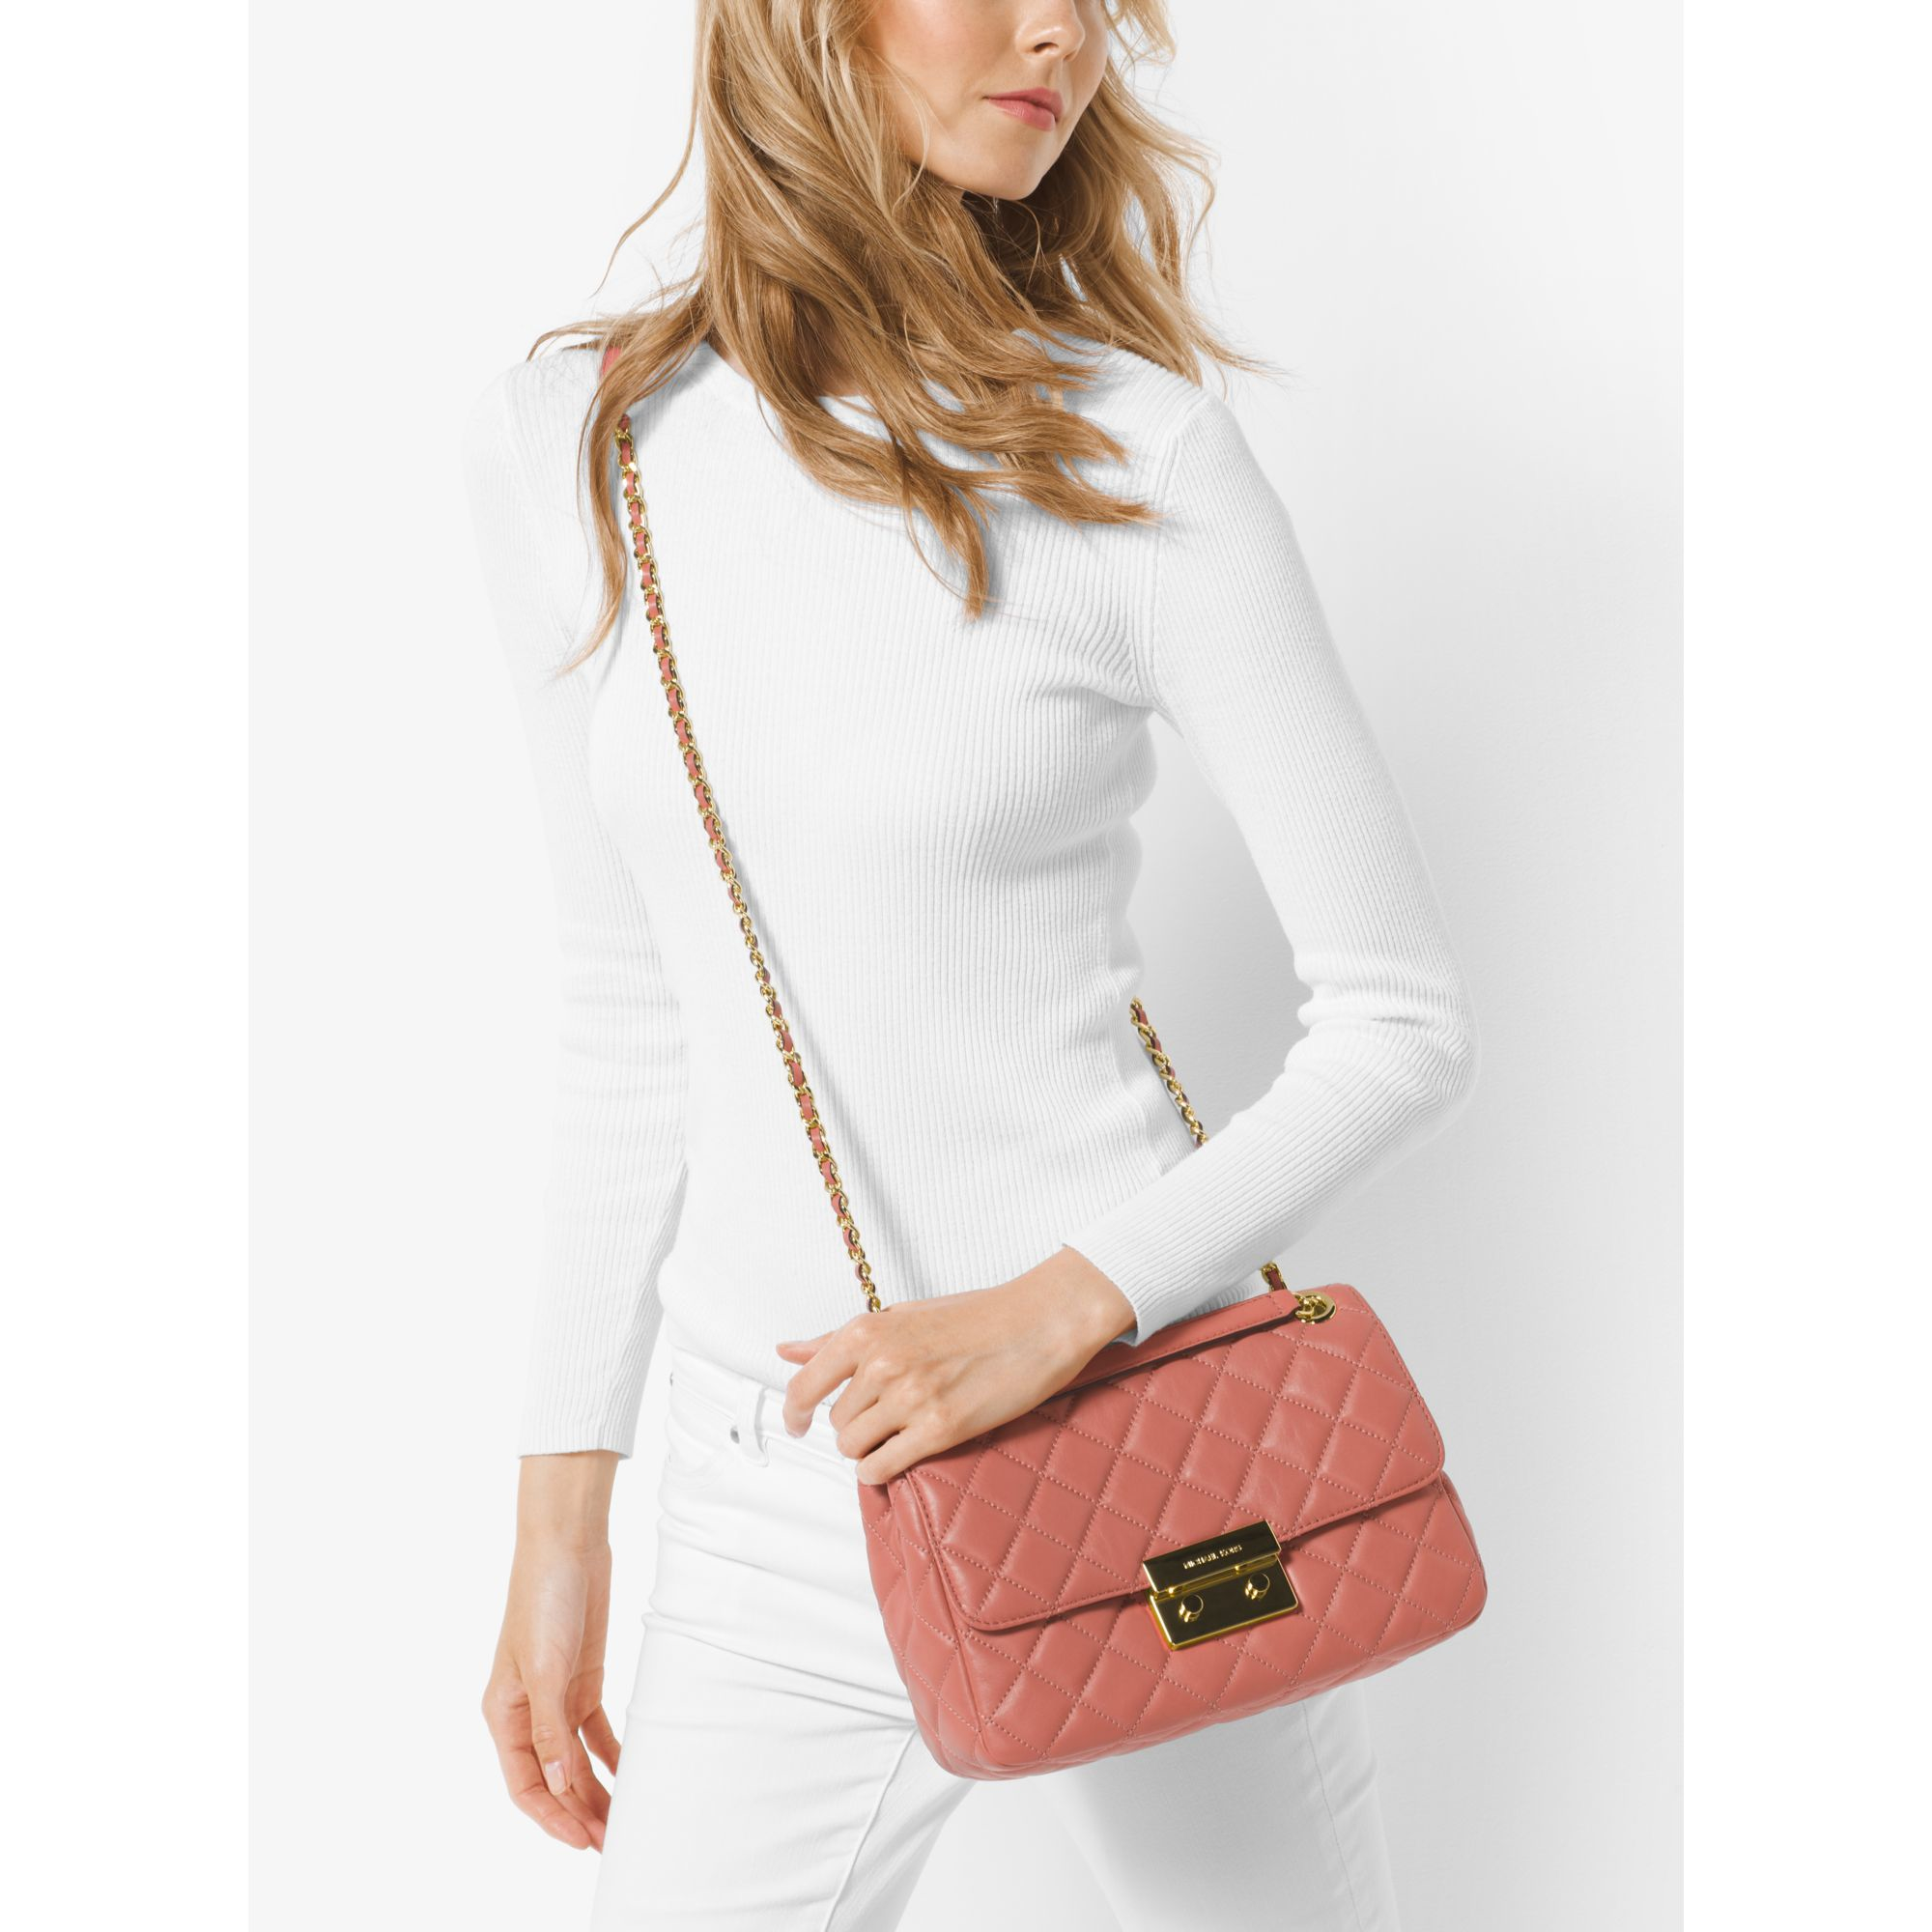 ae815bea460470 Sloan Large Quilted Leather Shoulder Bag Soft Pink Best Quilt. Gallery. Michael  Kors Sloan Large Chain ...